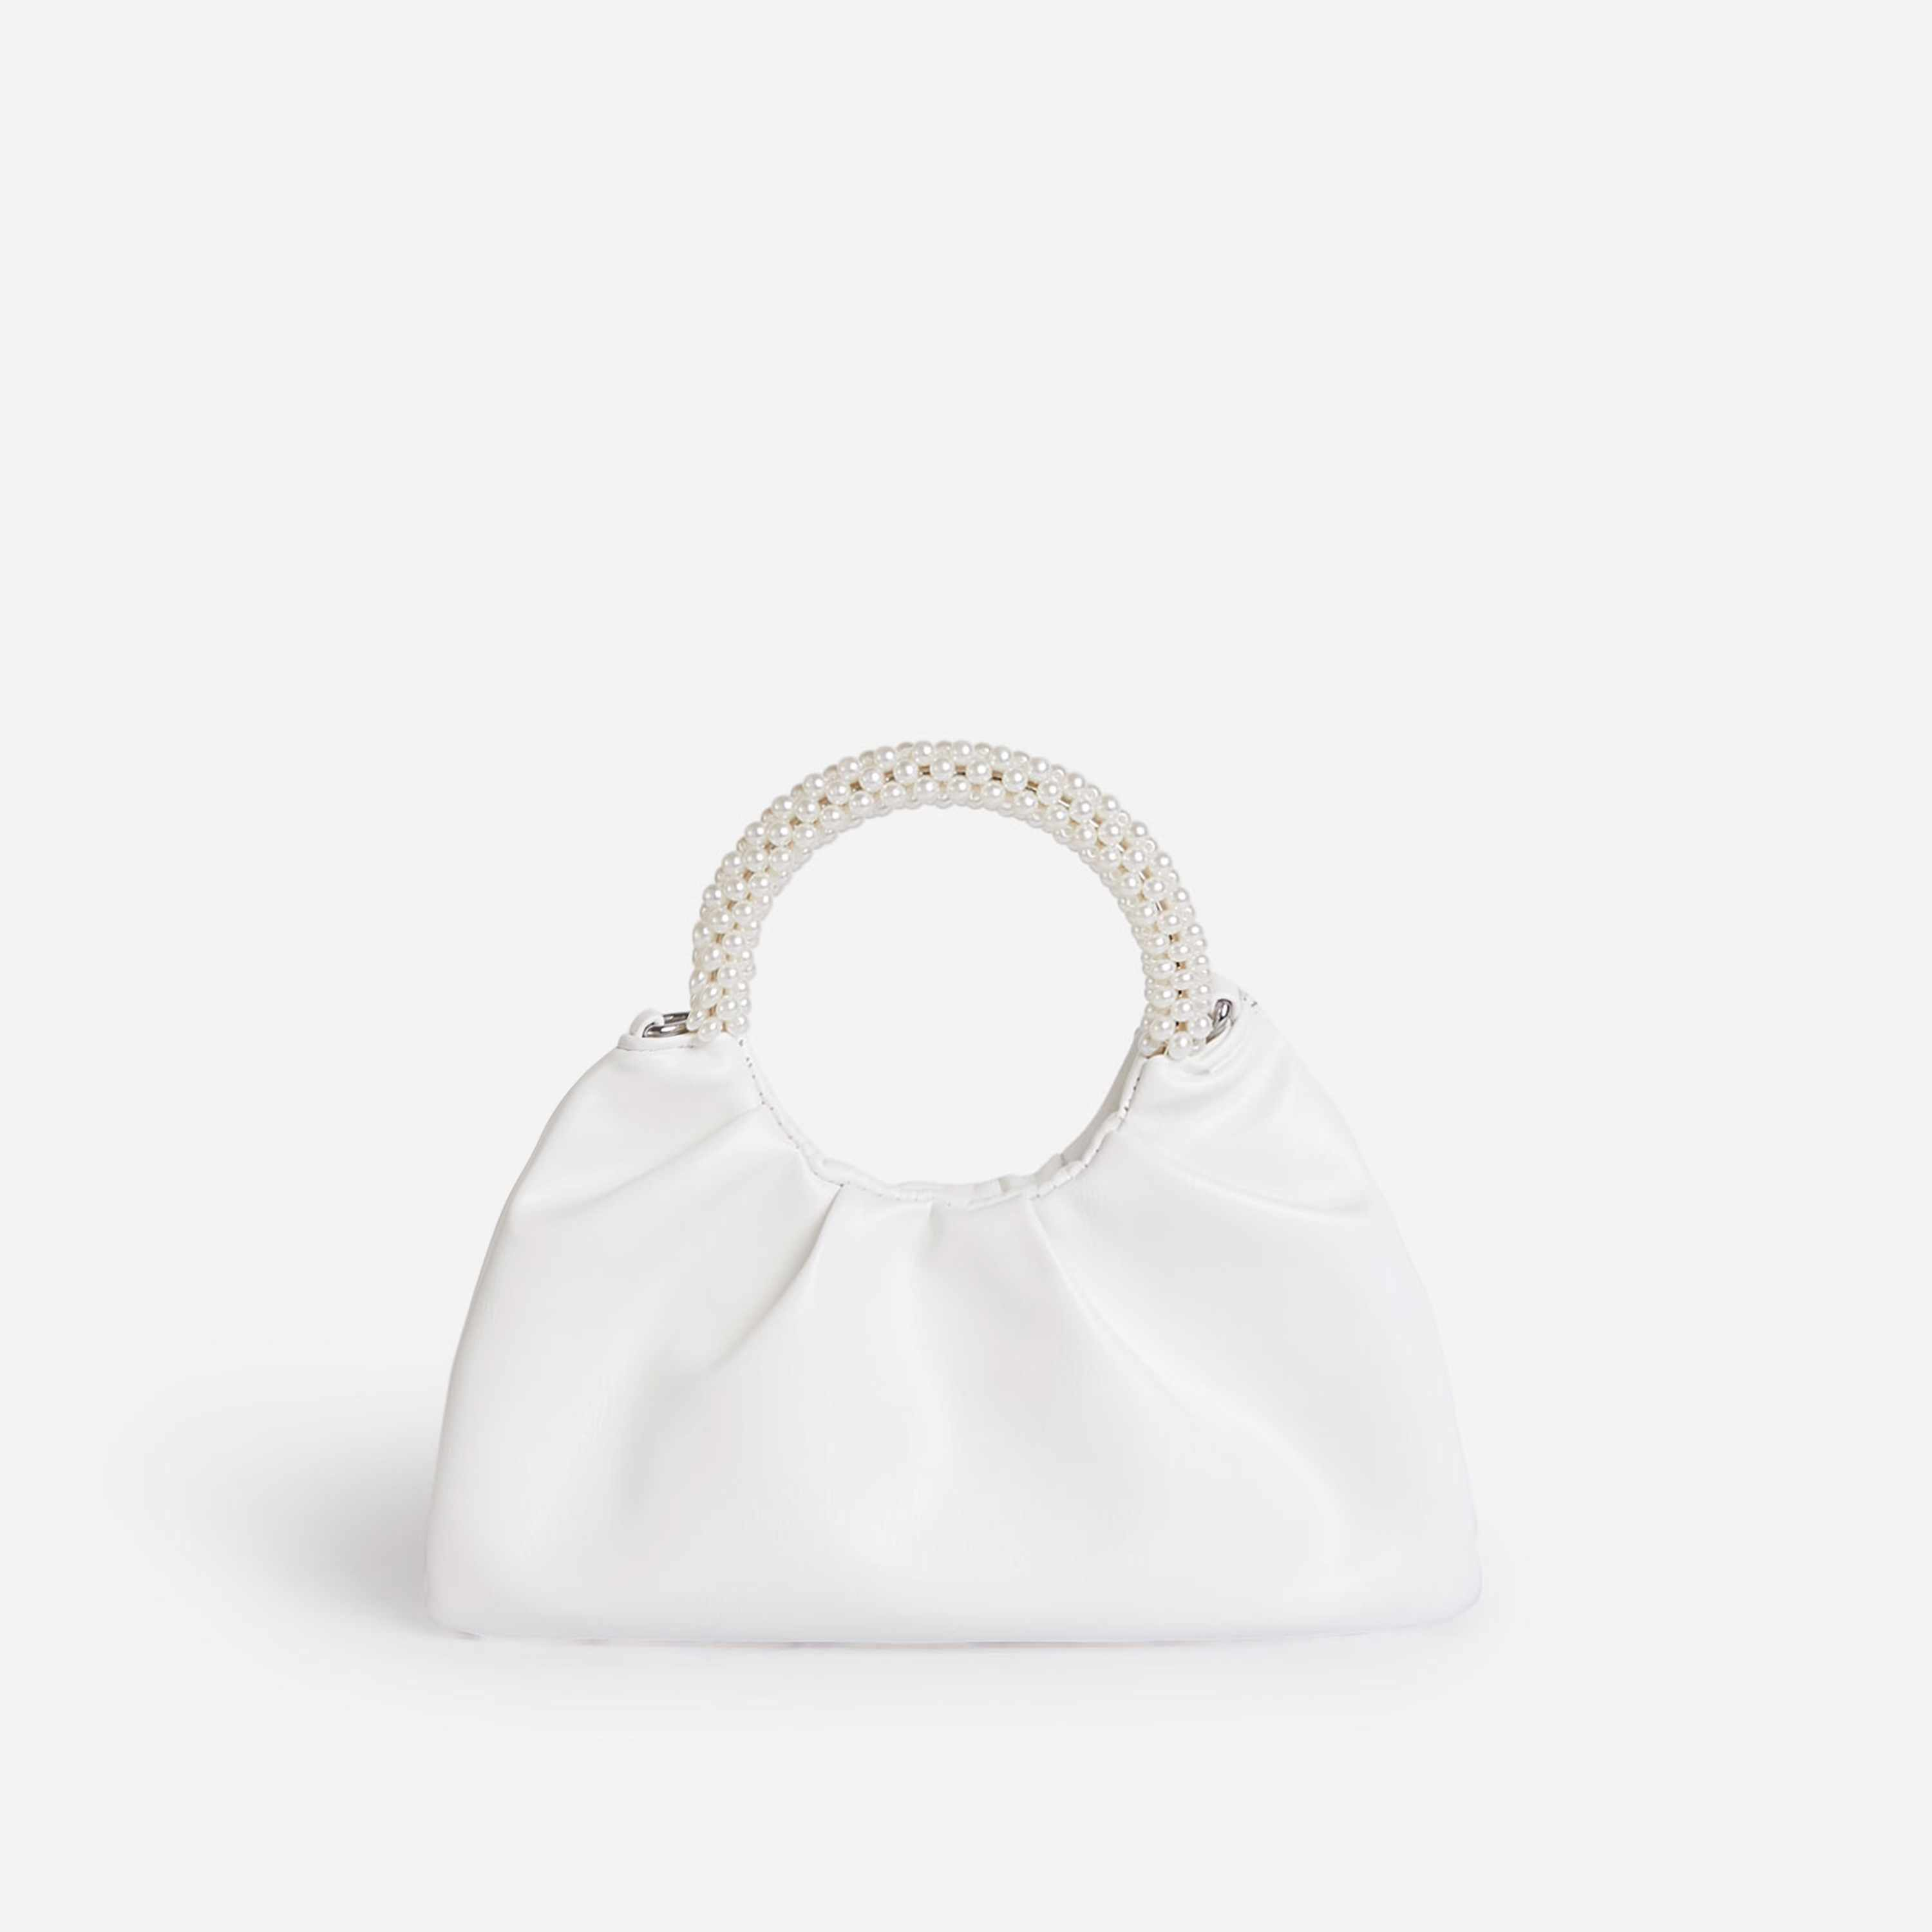 Meegan Pearl handle Detail Ruched Bag In White Faux Leather